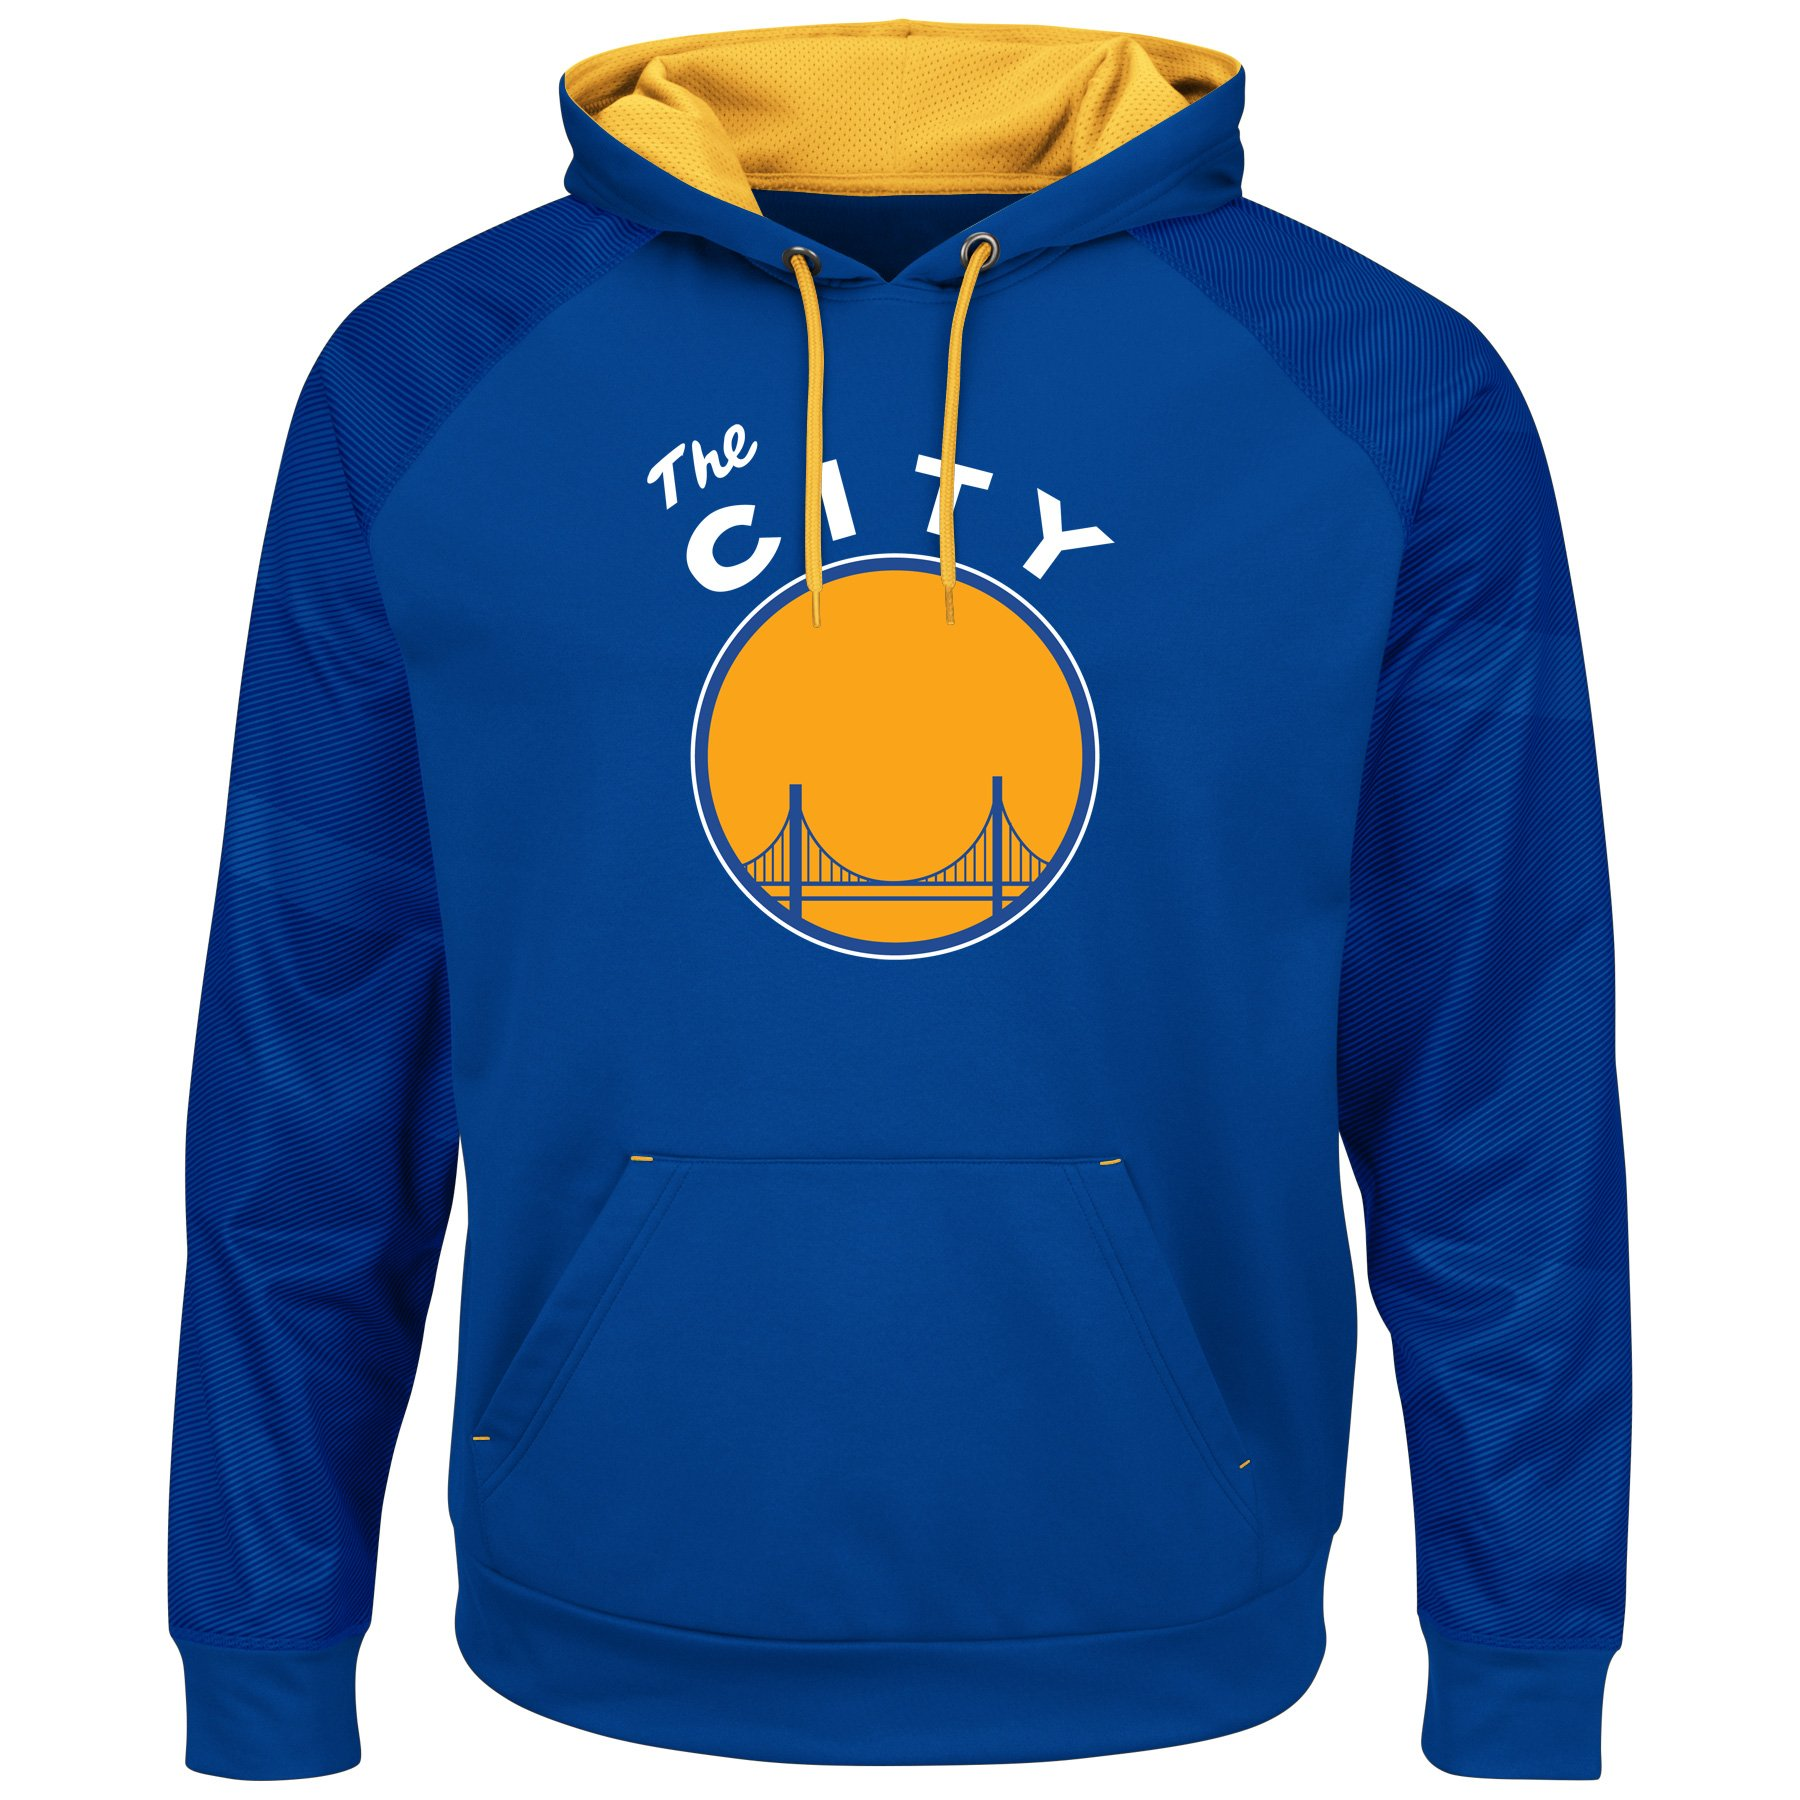 Majestic NBA Men's Armor II Polyester Pullover Hoodie (Xlarge, Golden State Warriors - Blue)